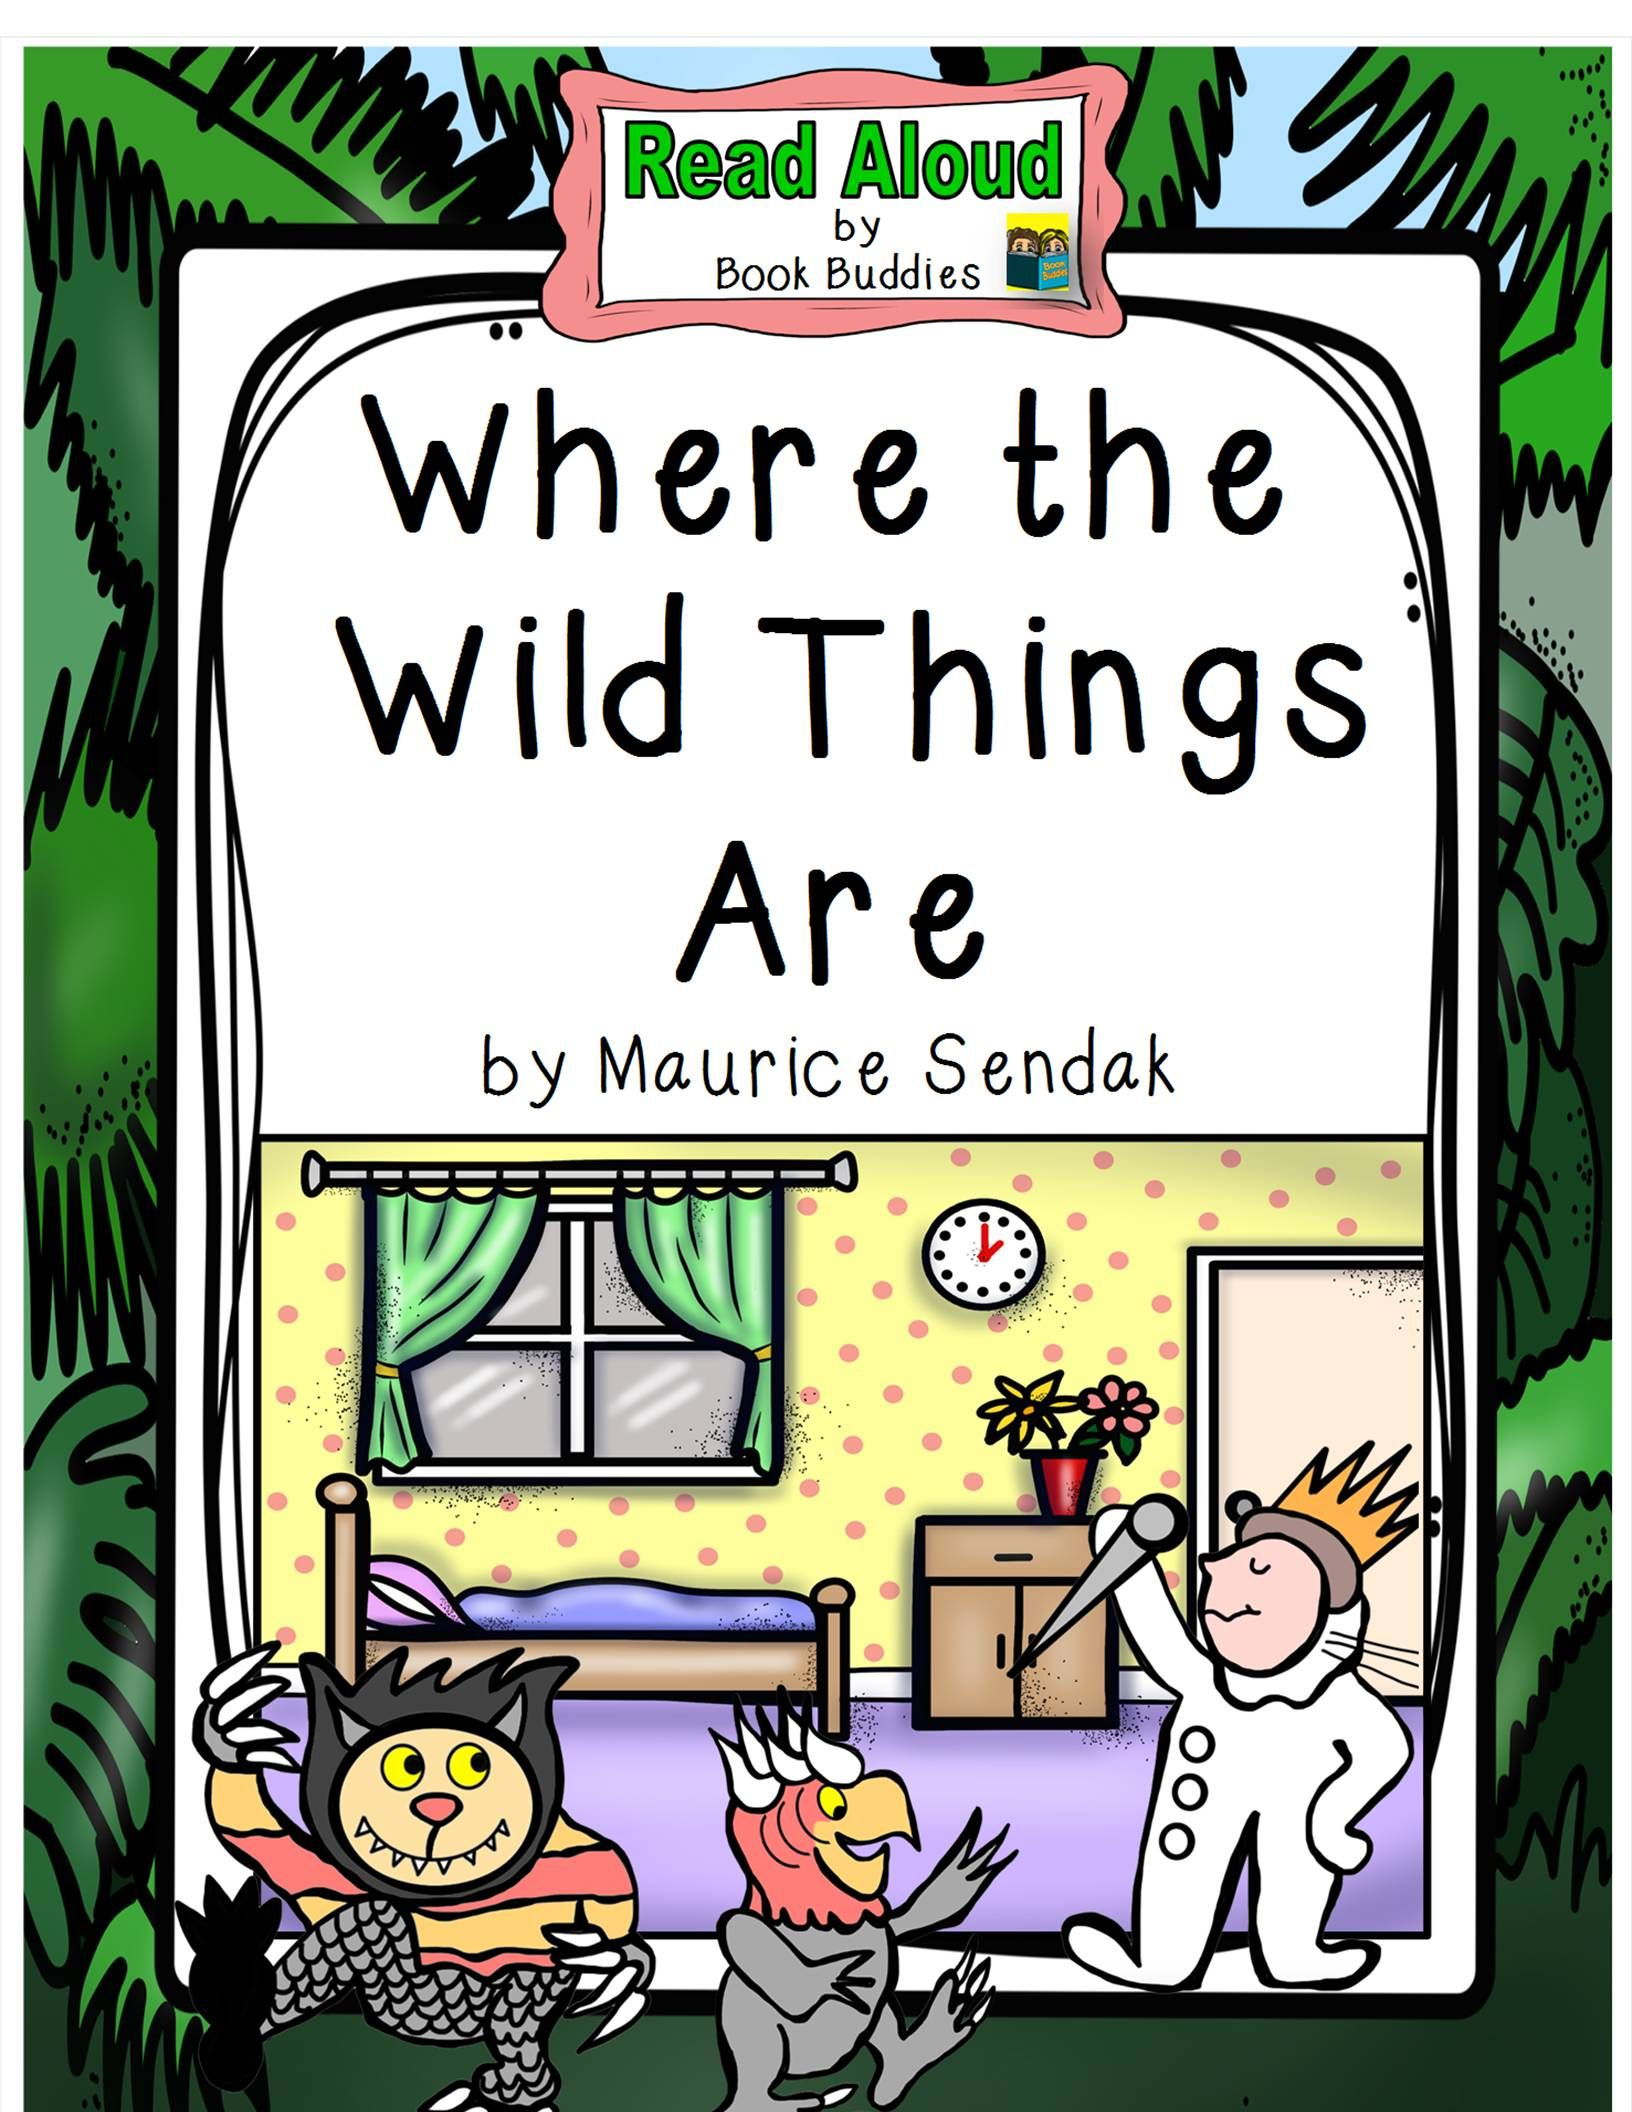 Where the Wild Things Are Reading Activities | Simple ...